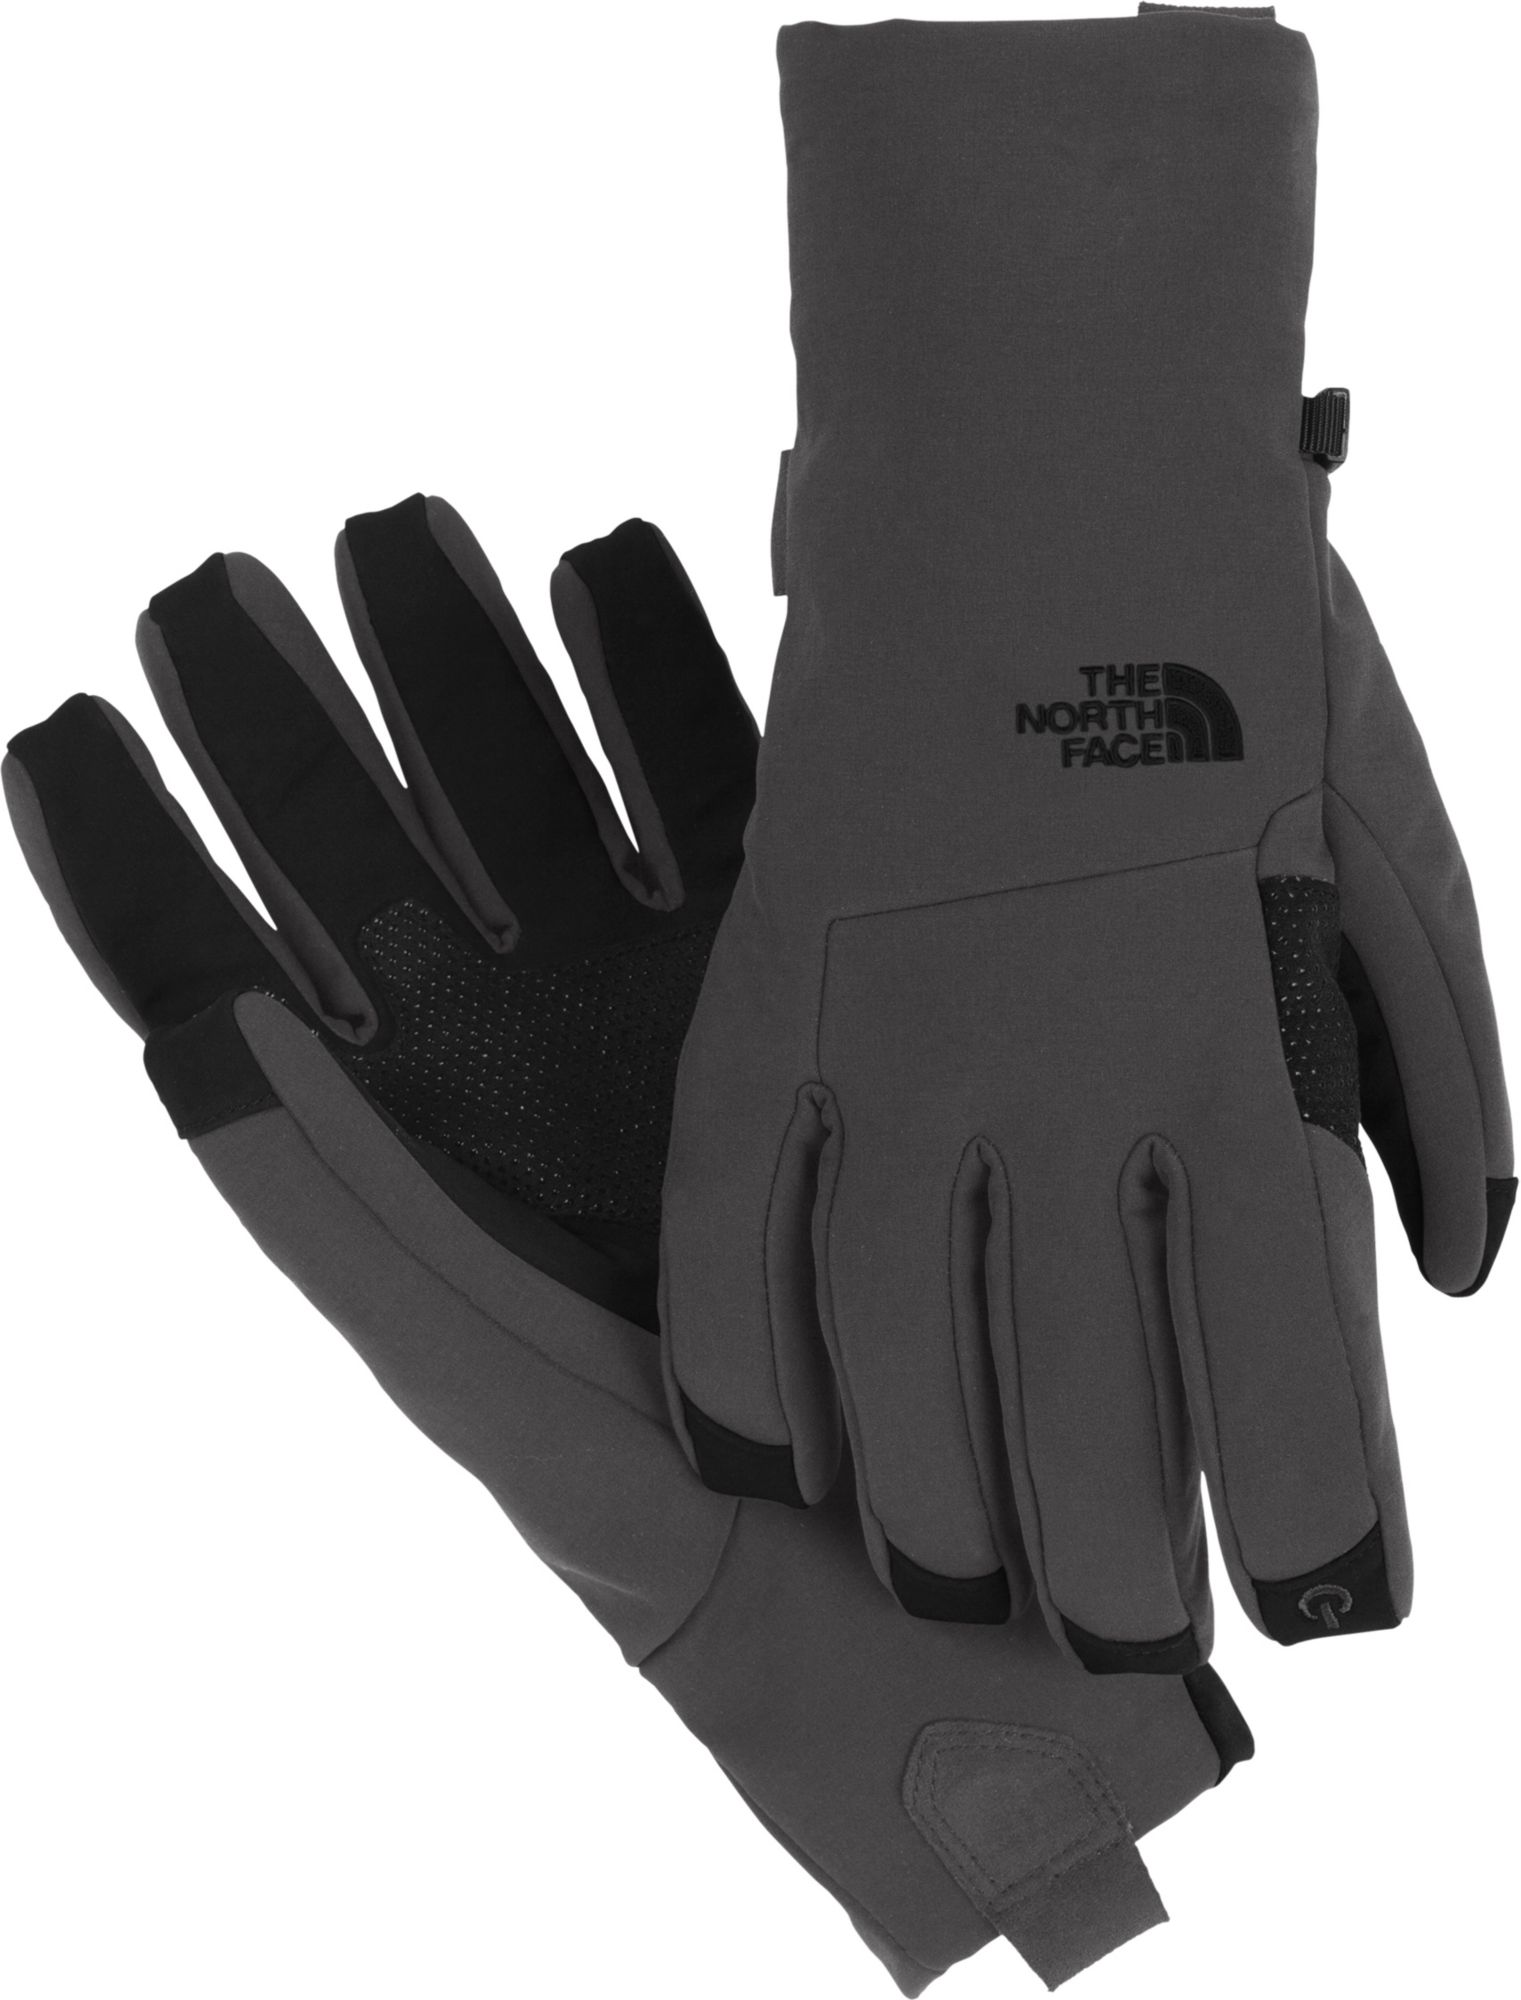 Mens fleece gloves xxl - Product Image The North Face Men S Apex Etip Gloves